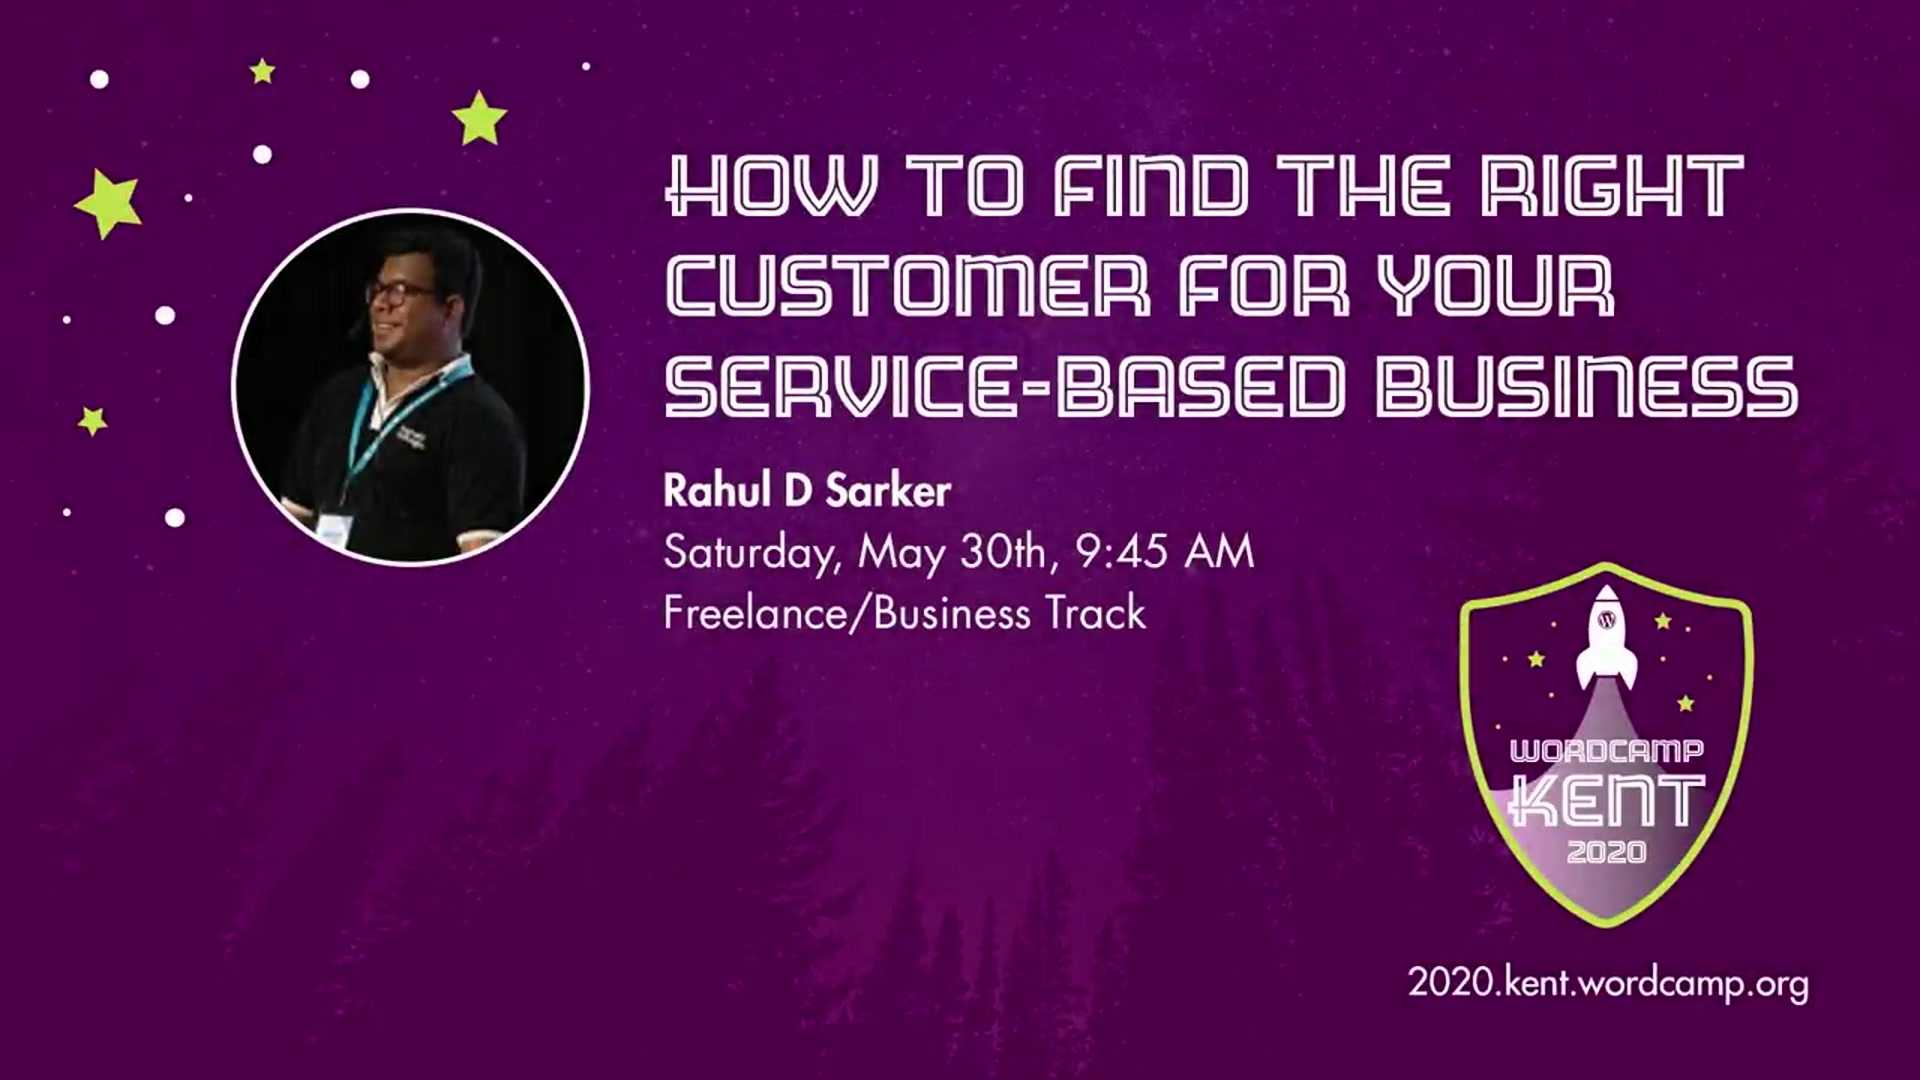 Rahul D. Sarker: How to Find The Right Customer For Your Service-Based Business